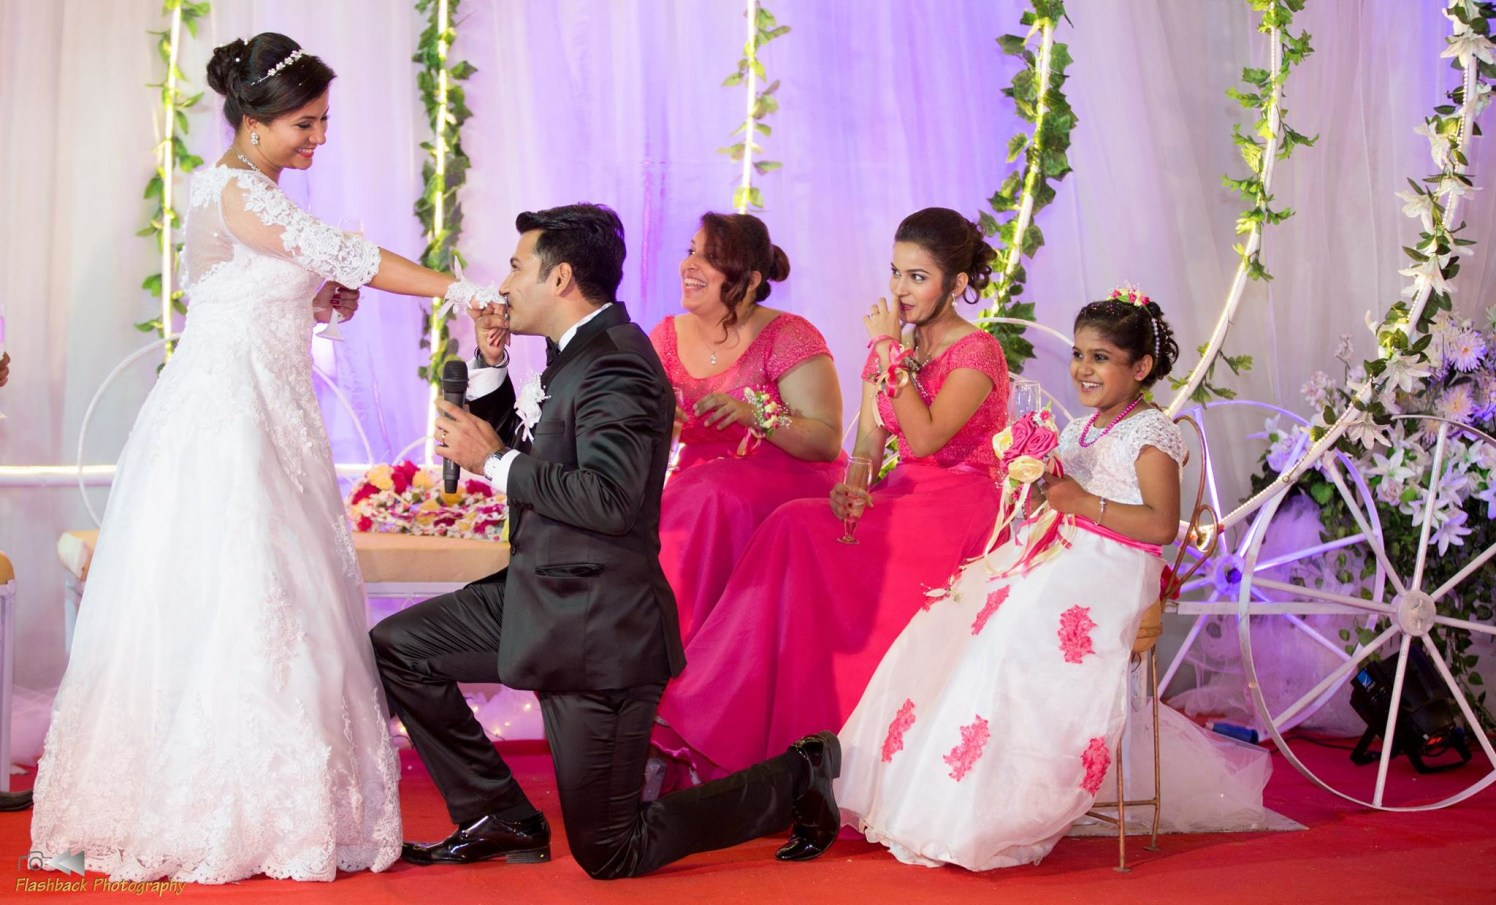 Candid Moment of Groom Proposing the Bride by Lloyd Bangera Wedding-photography | Weddings Photos & Ideas